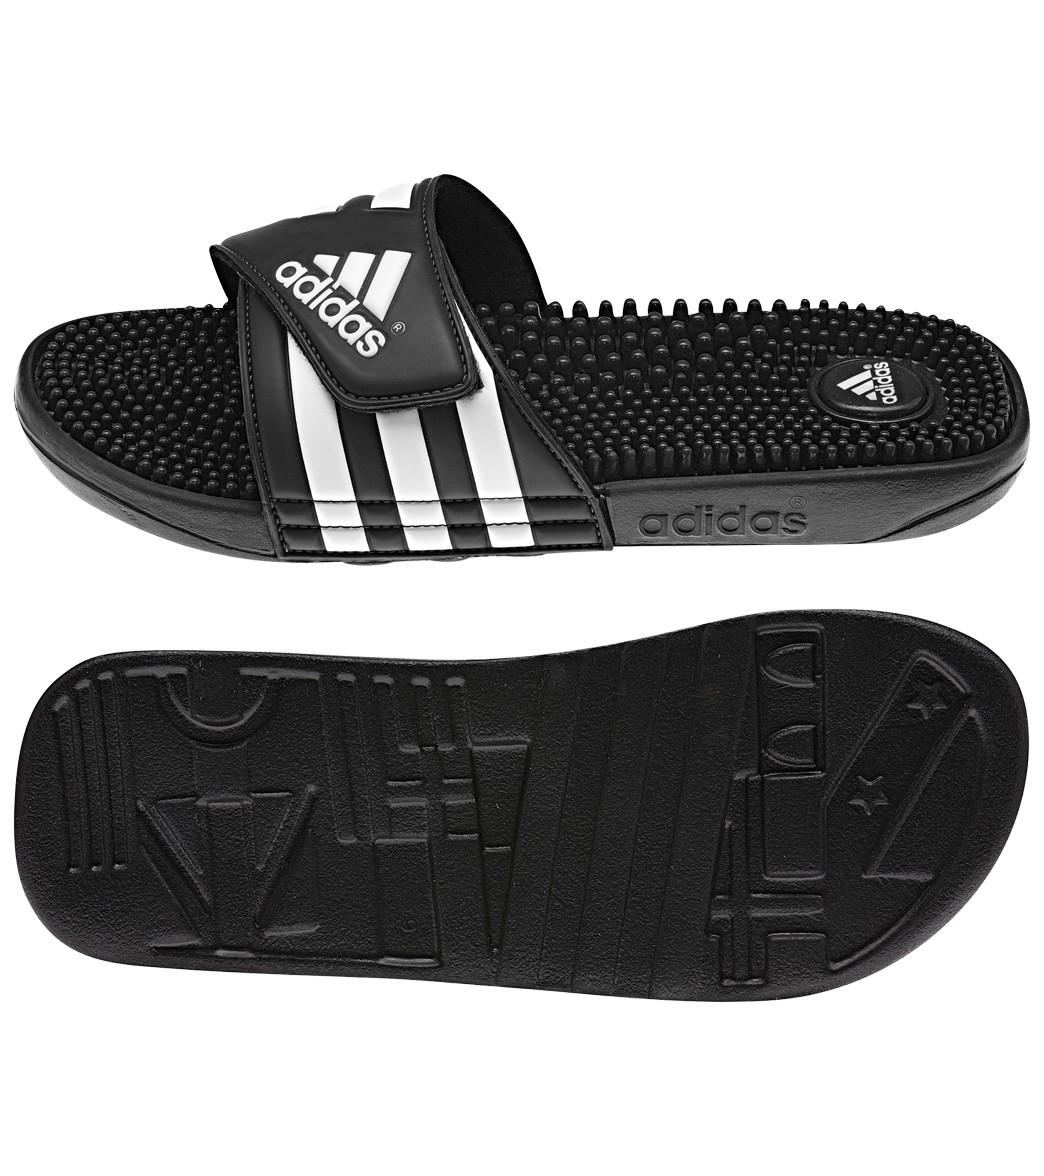 7e7614cab Adidas Adissage Slide Sandals at SwimOutlet.com